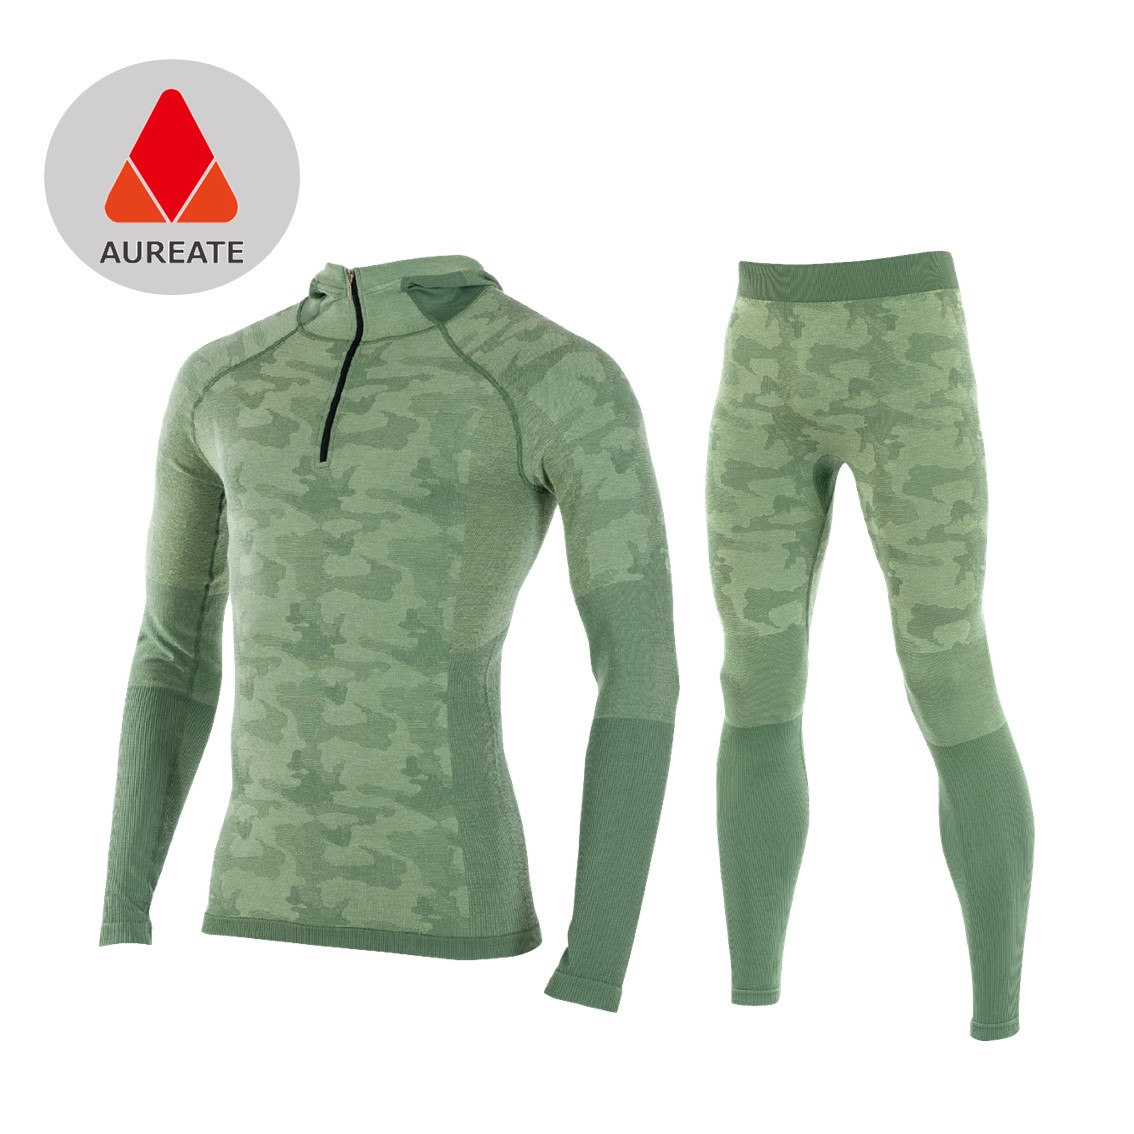 Thermal Underwear Men's Long Underwear Soft And Comfortable Warm long johns